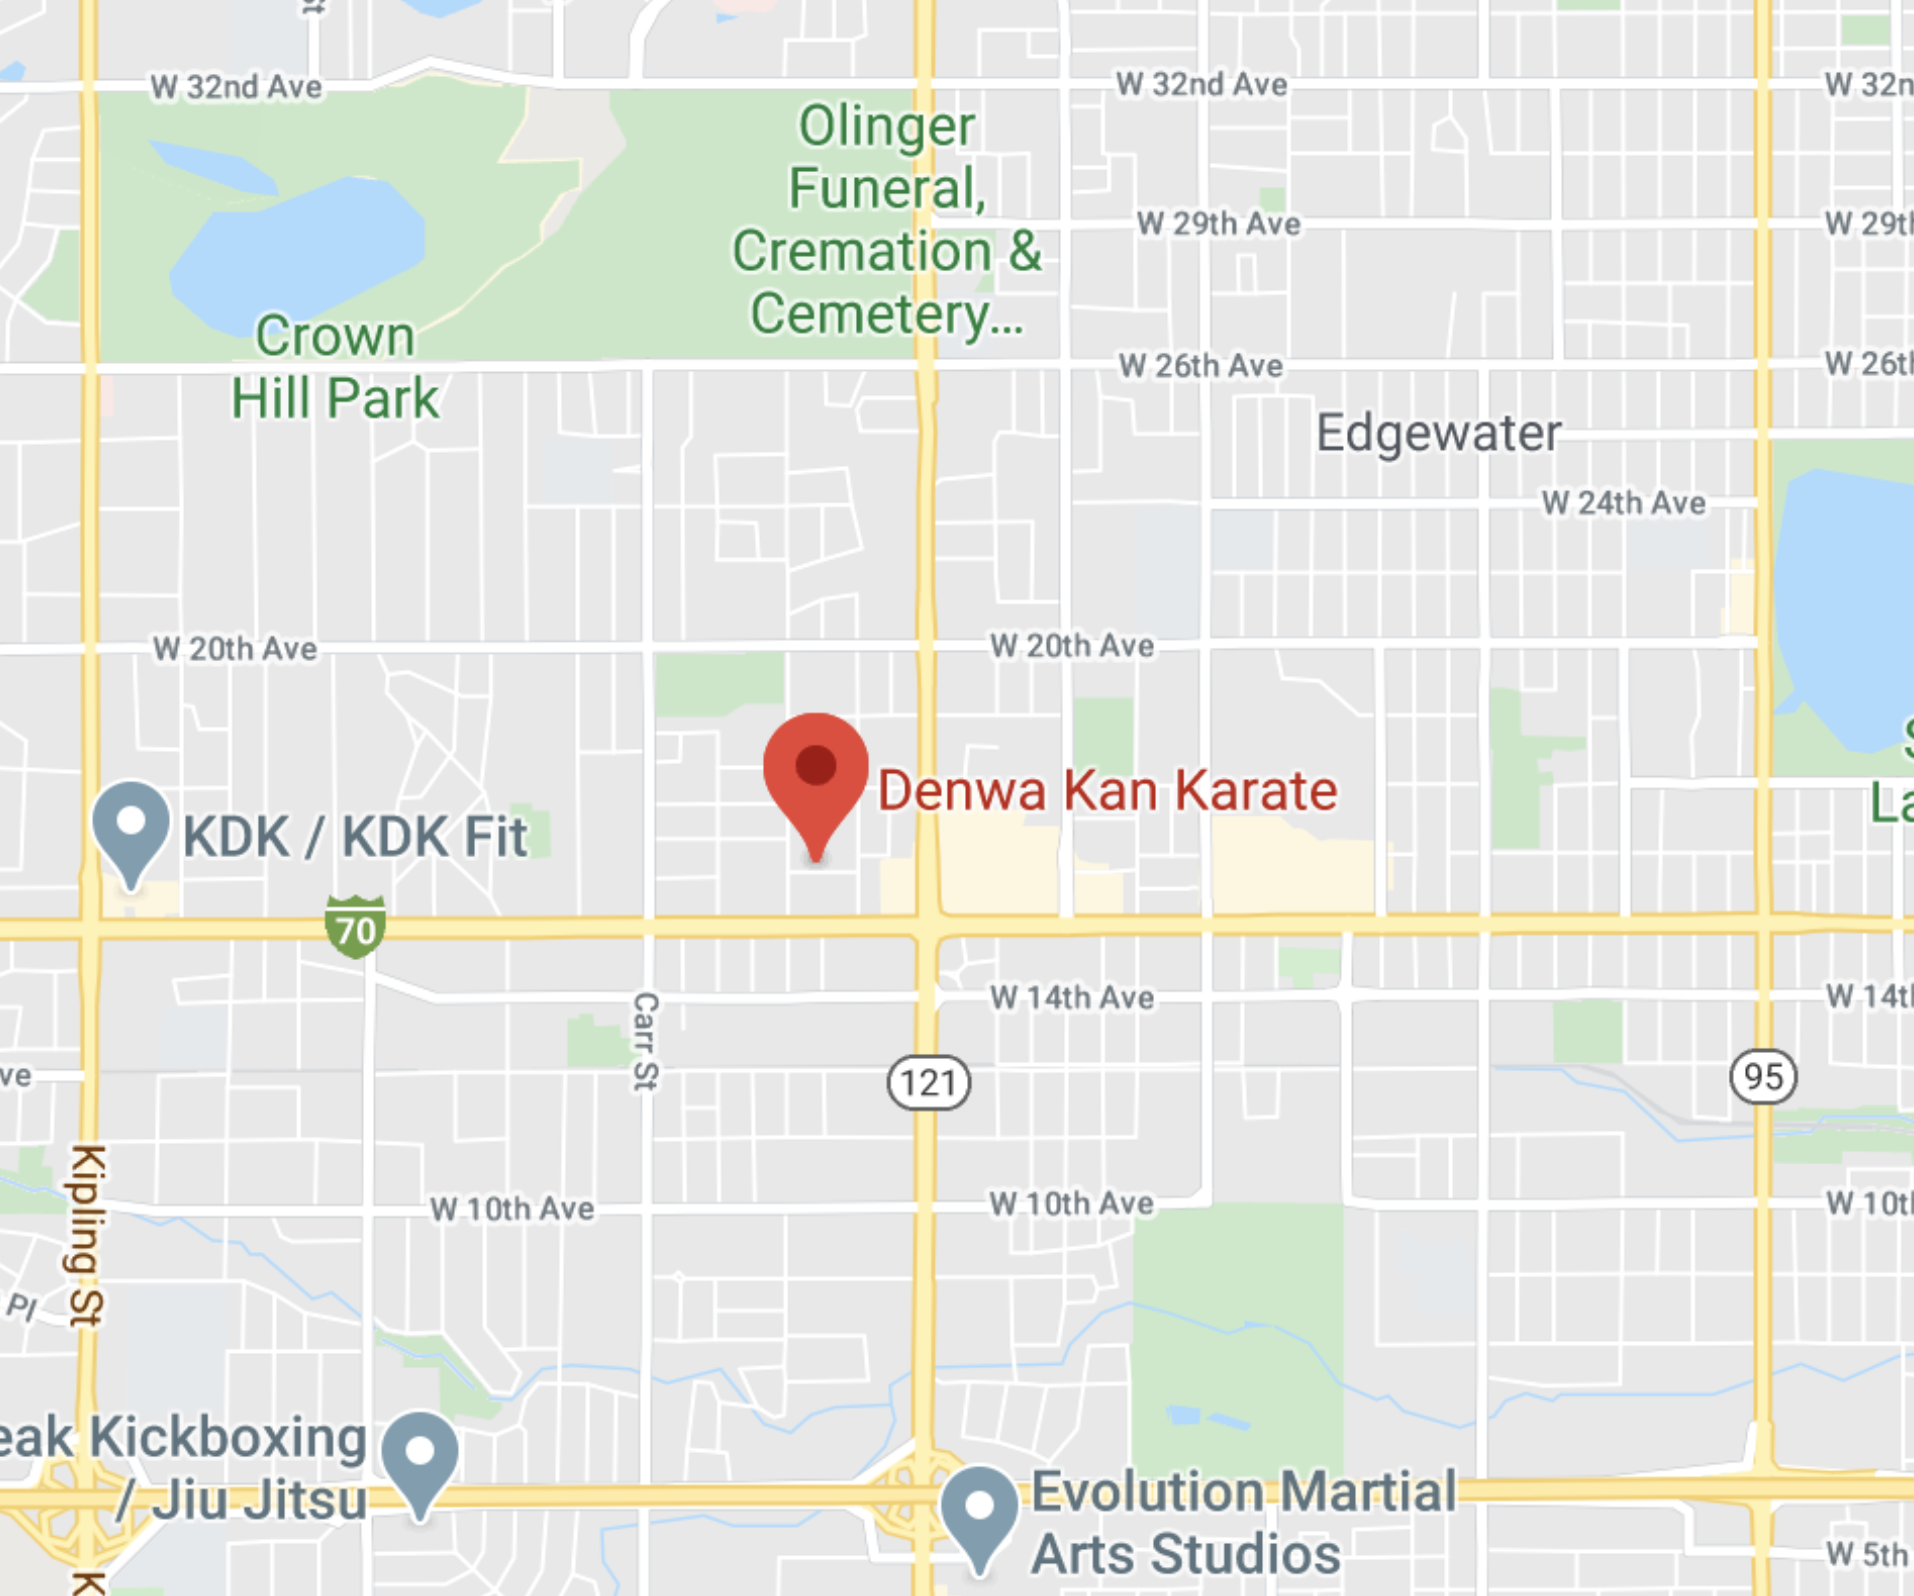 Denwakan Karate Wado Kai Karate Denver, CO